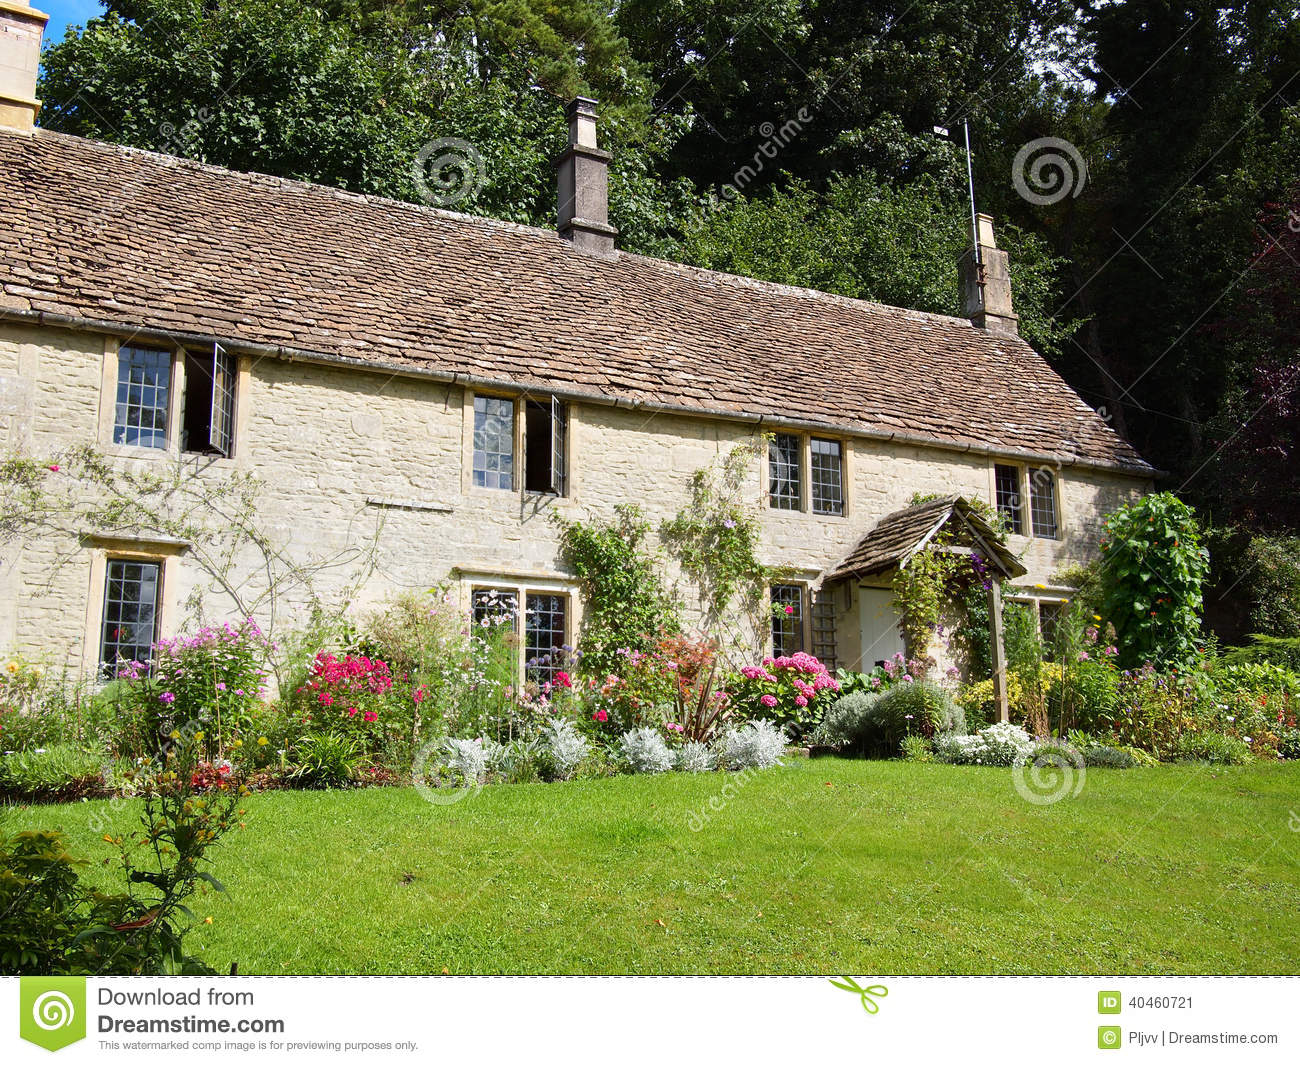 Cottage anglais avec le jardin d 39 agr ment photo stock for Migliori piani casa del cottage